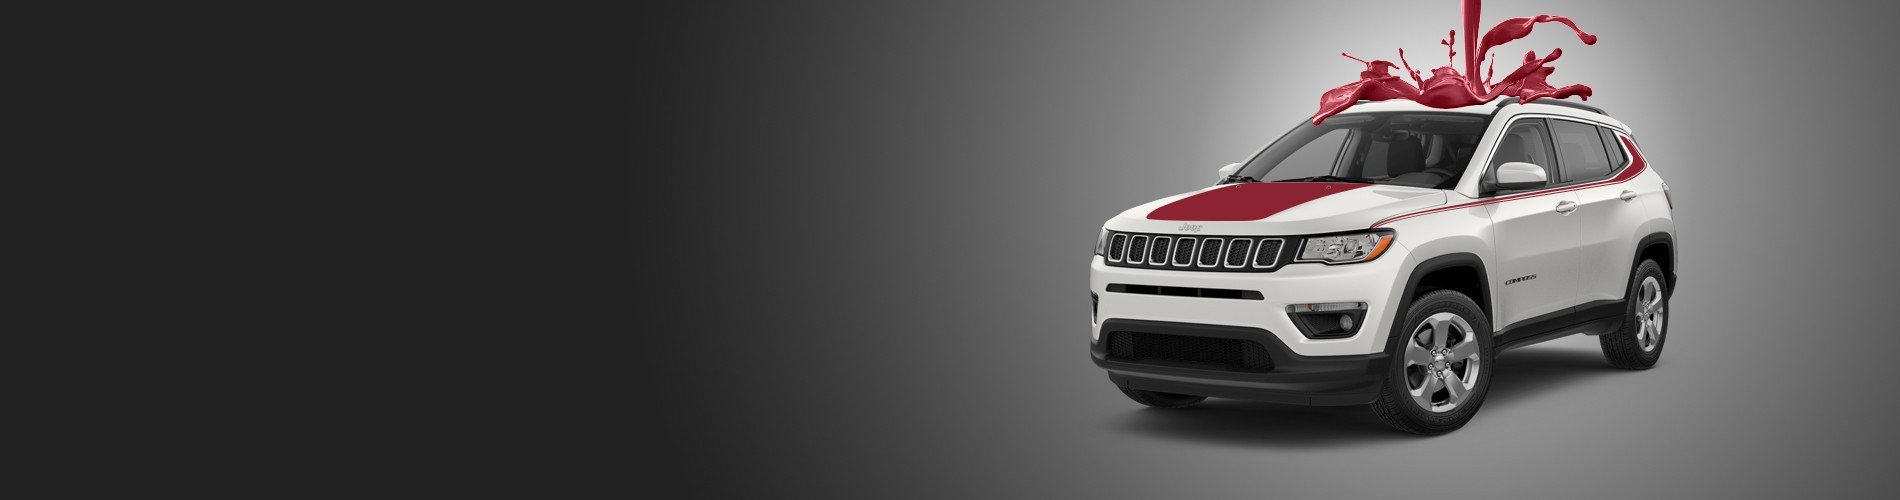 My Beautiful Car - Jeep Compass Decals